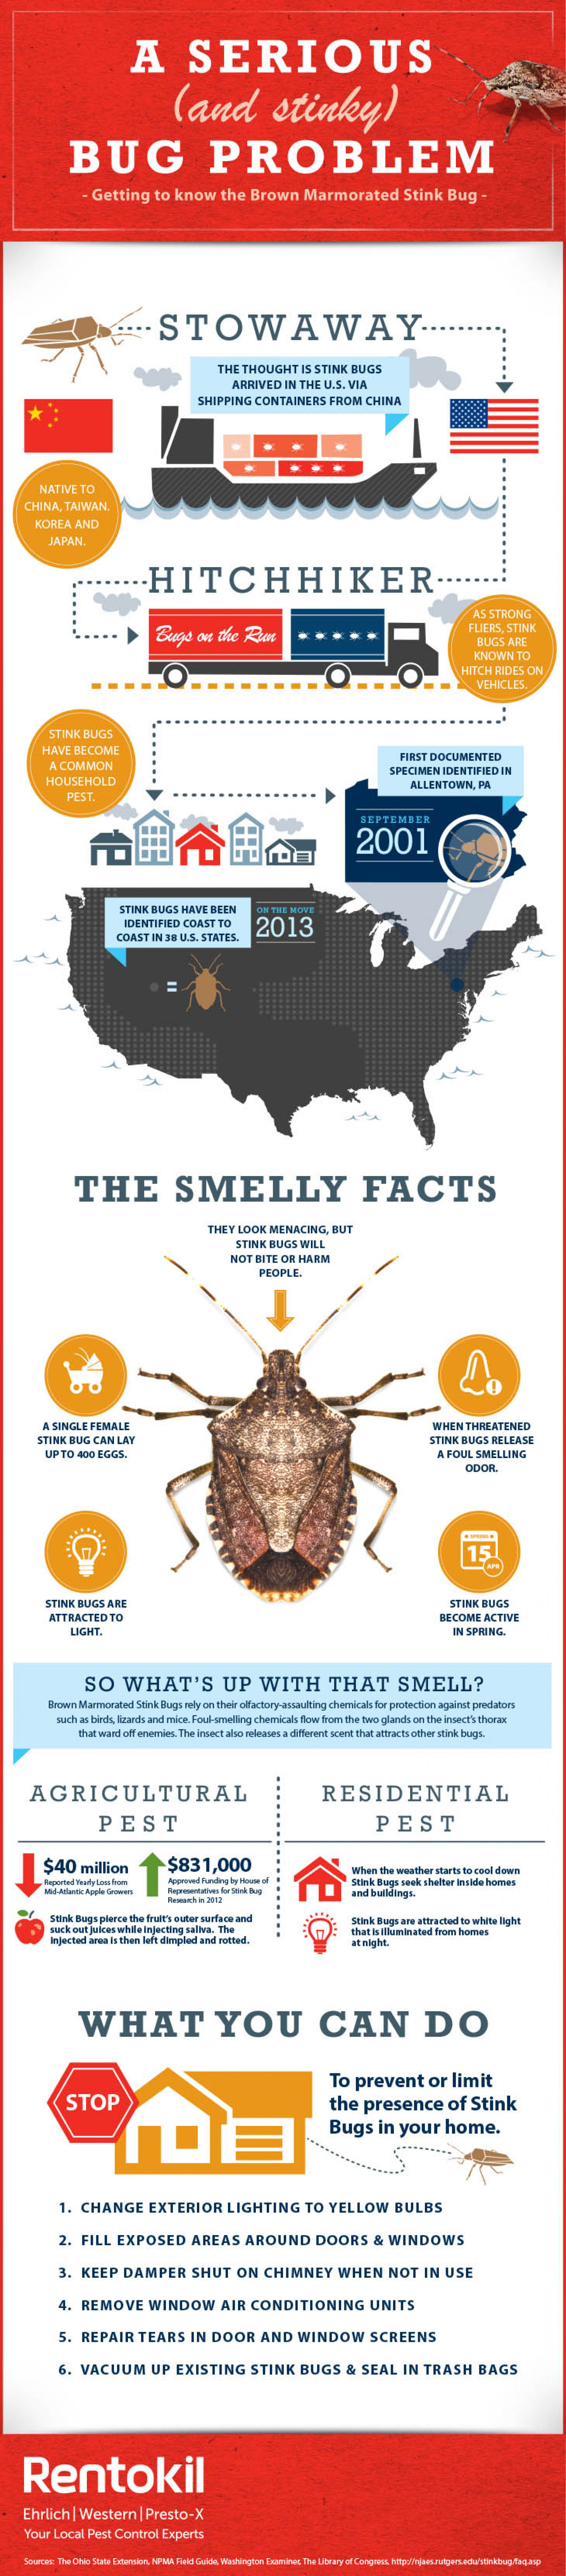 Getting to Know the Brown Marmorated Stink Bug Infographic